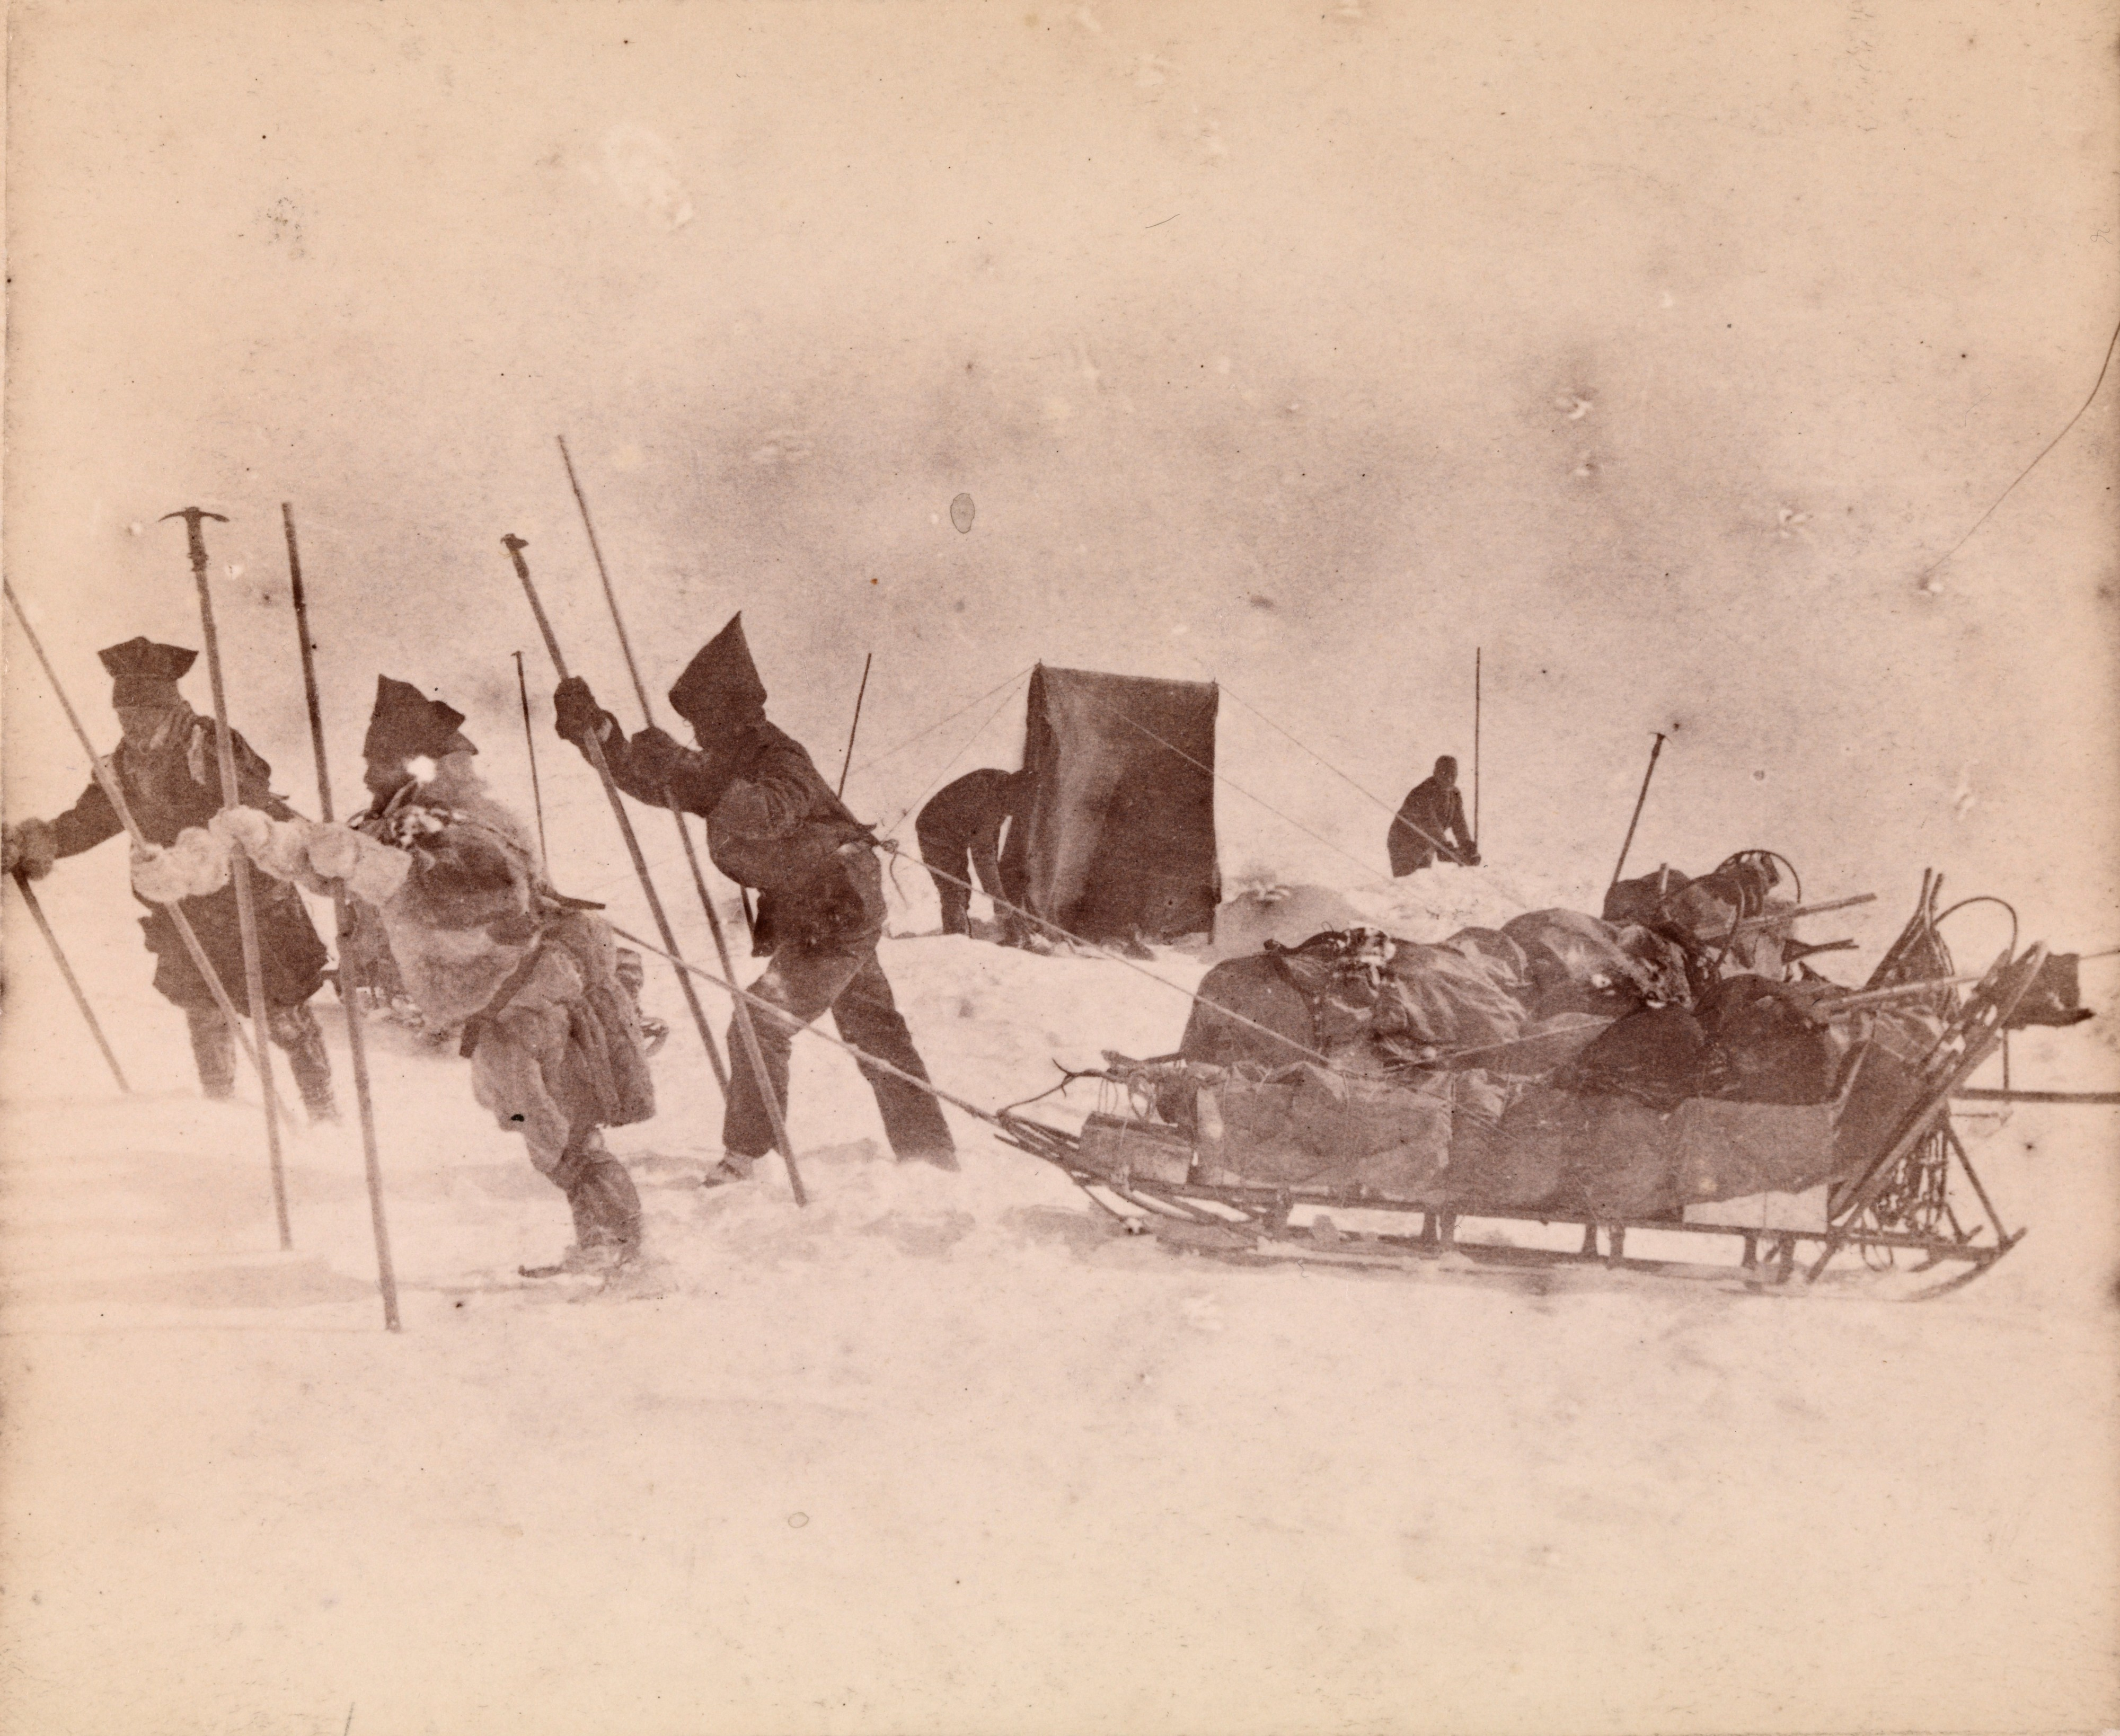 Nansen's Greenland expedition crossing